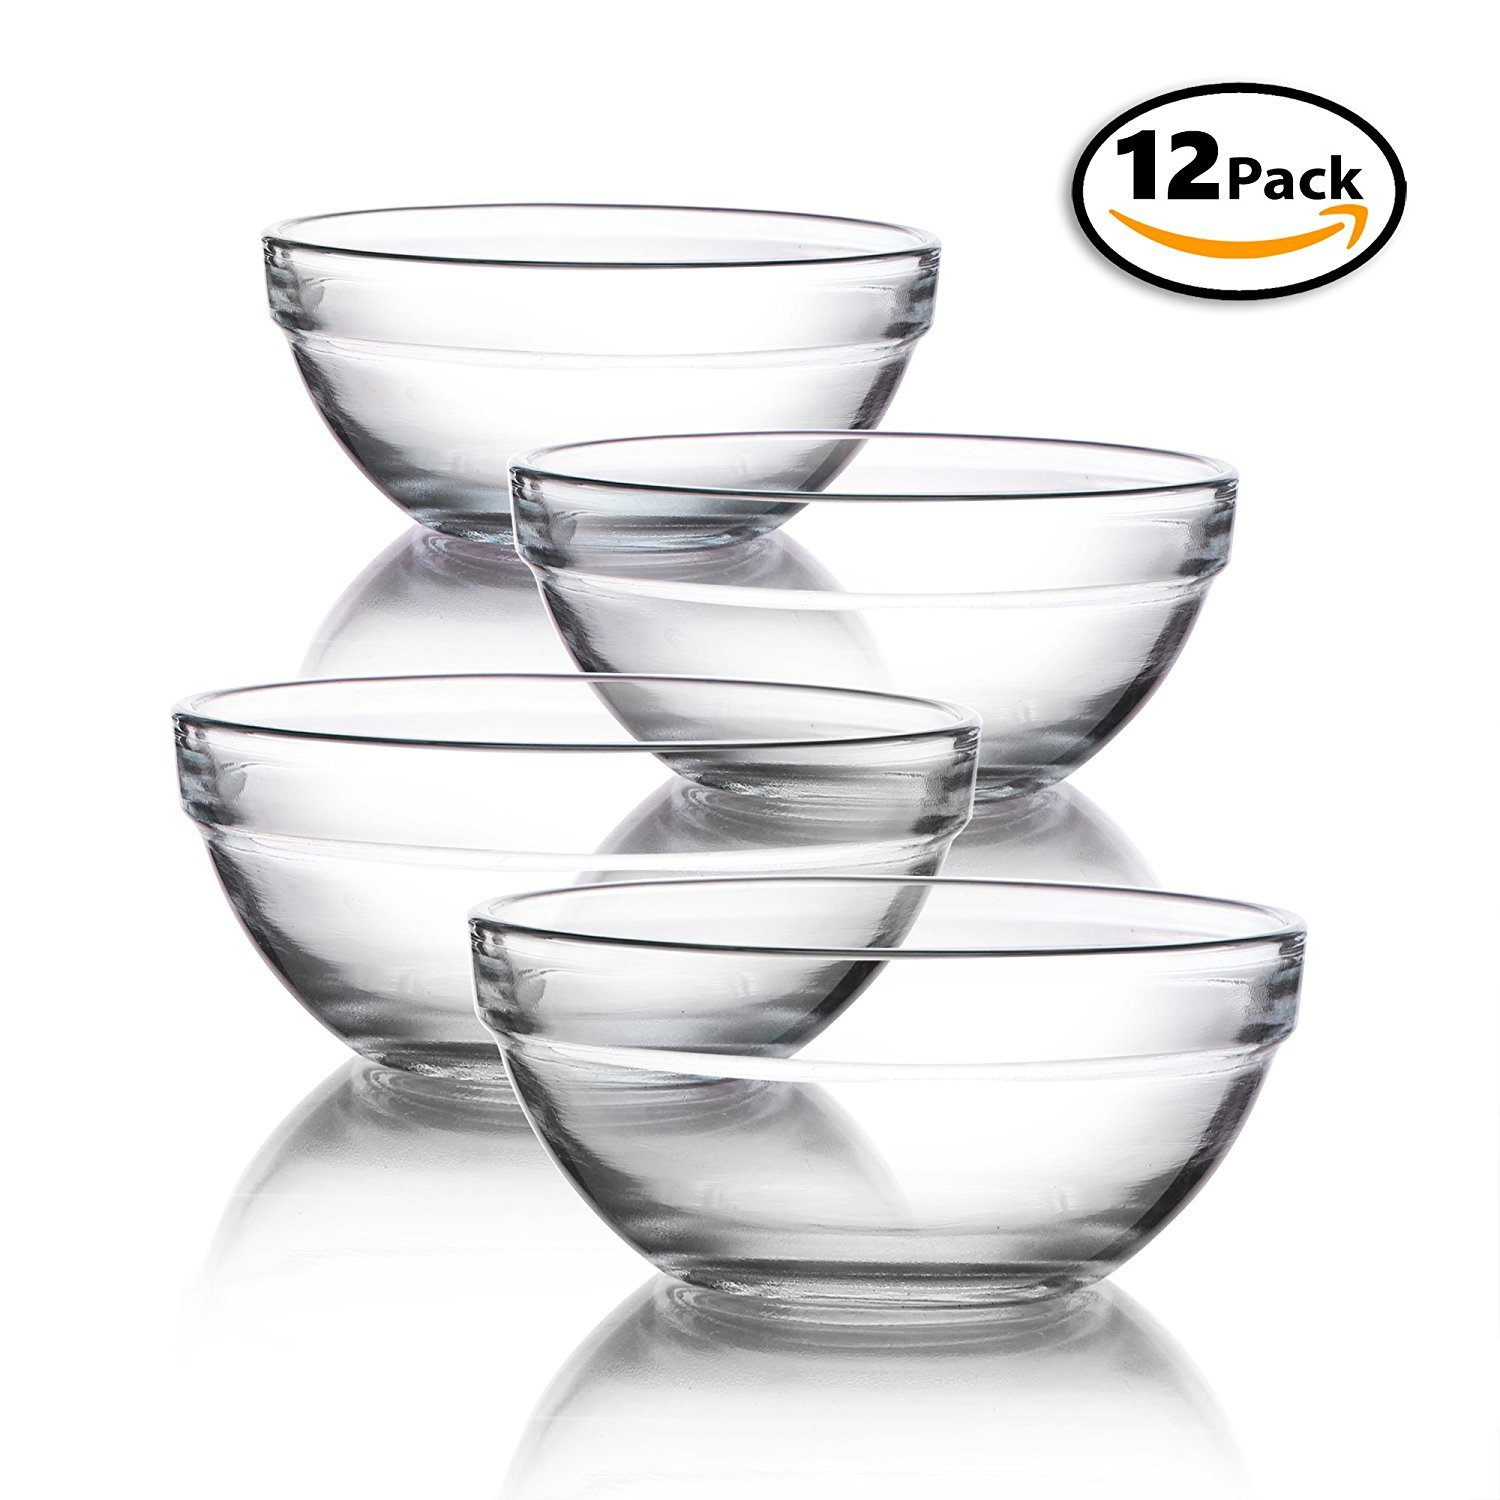 Mini 3.5 Inch Glass Bowls for Kitchen Prep, Dessert, Dips, and Candy Dishes or Nut Bowls, Set of 12 Greenbrier